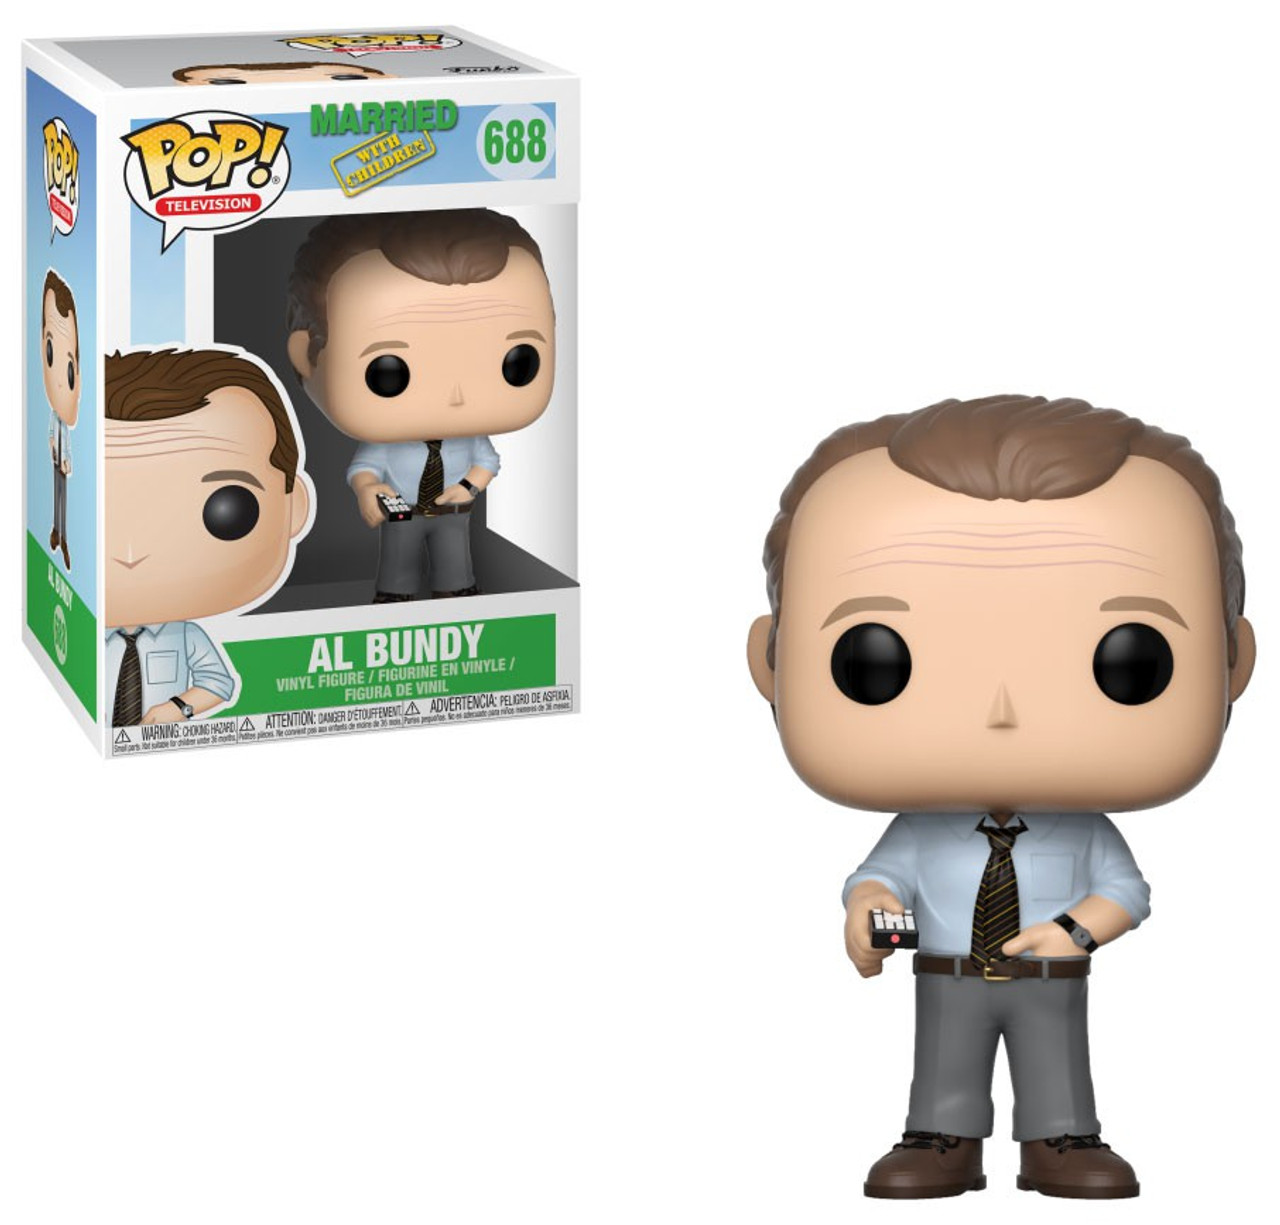 Funko Pop Television: Funko Married With Children Funko POP TV Al Bundy Vinyl